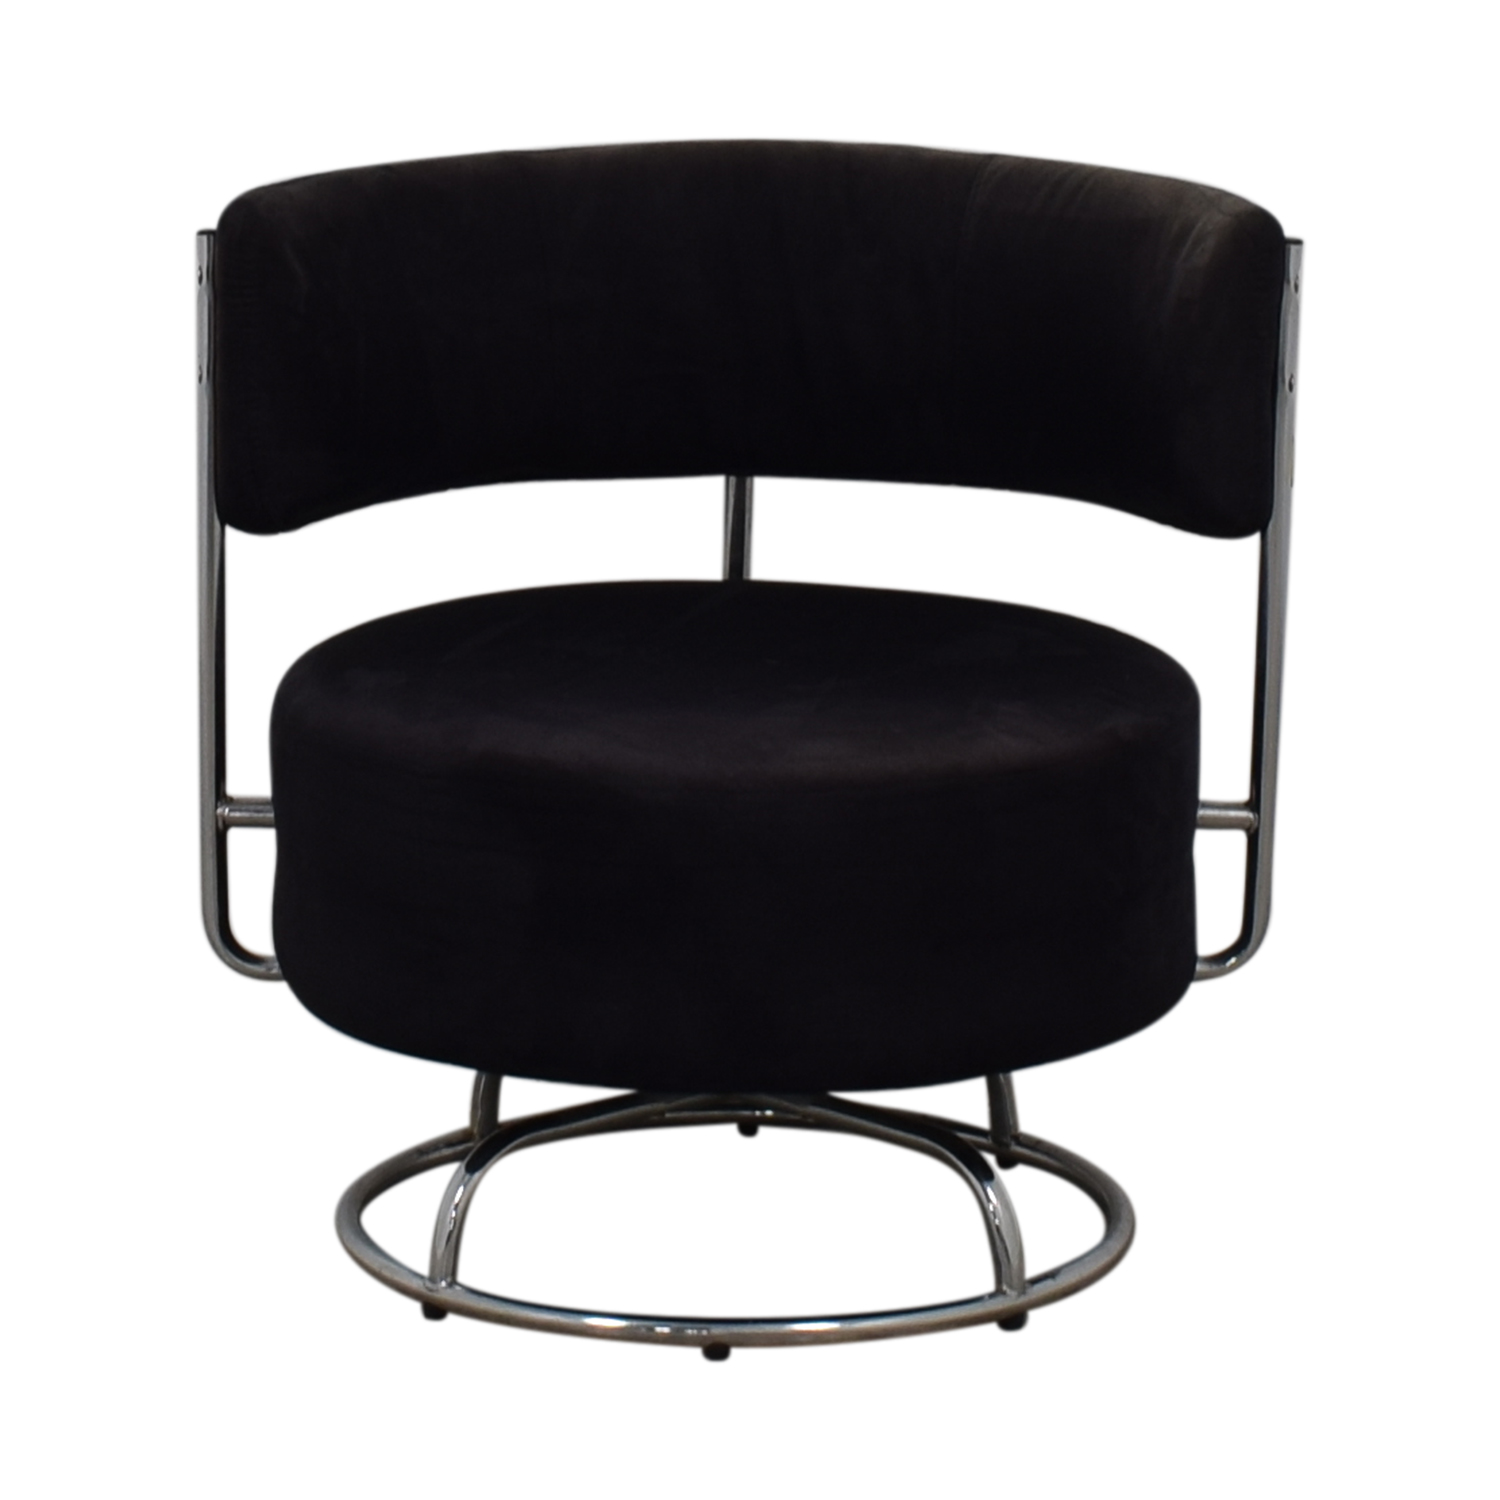 West Elm West Elm Black Rotating Design Chair black